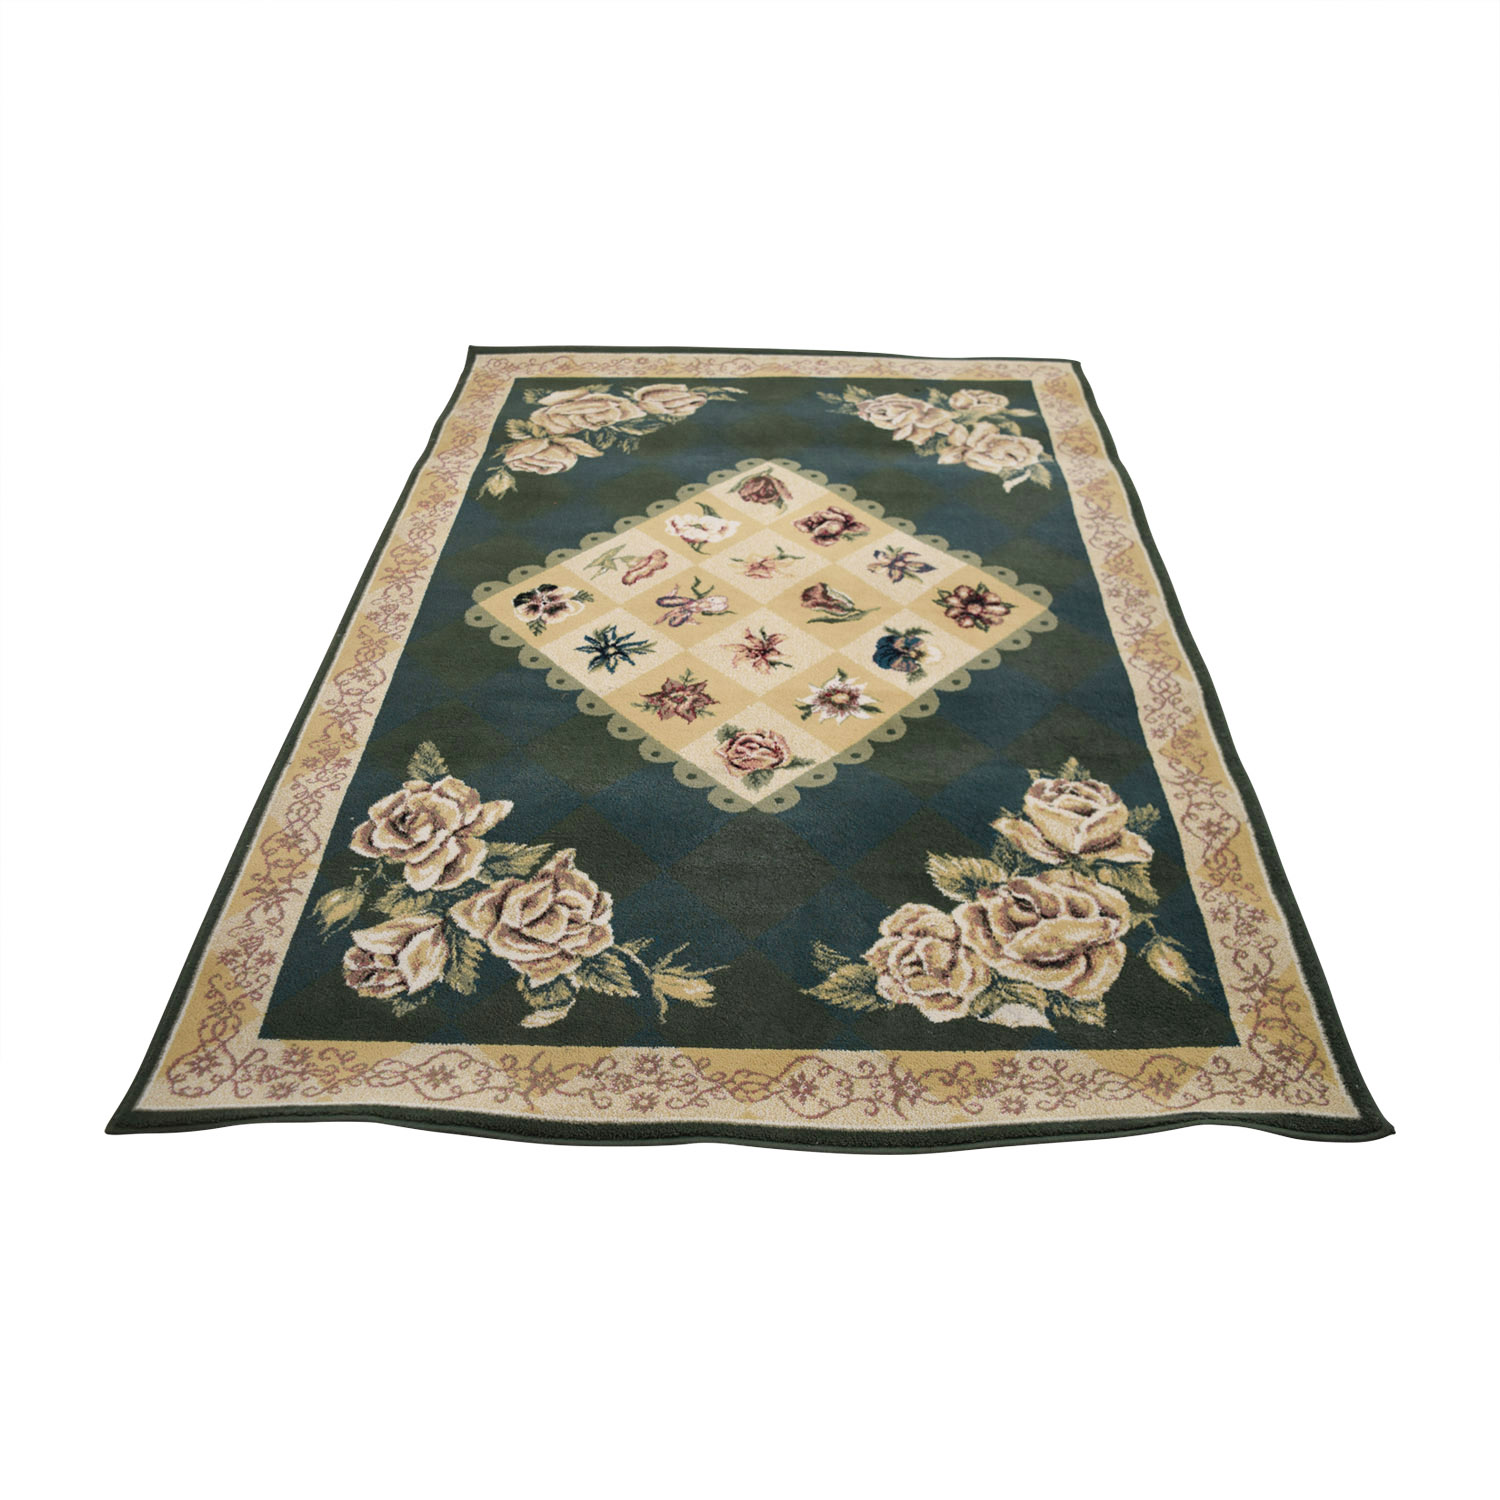 Tracy Porter by Shaw Rugs Tracy Porter by Shaw Rugs Green and Beige Floral Rug